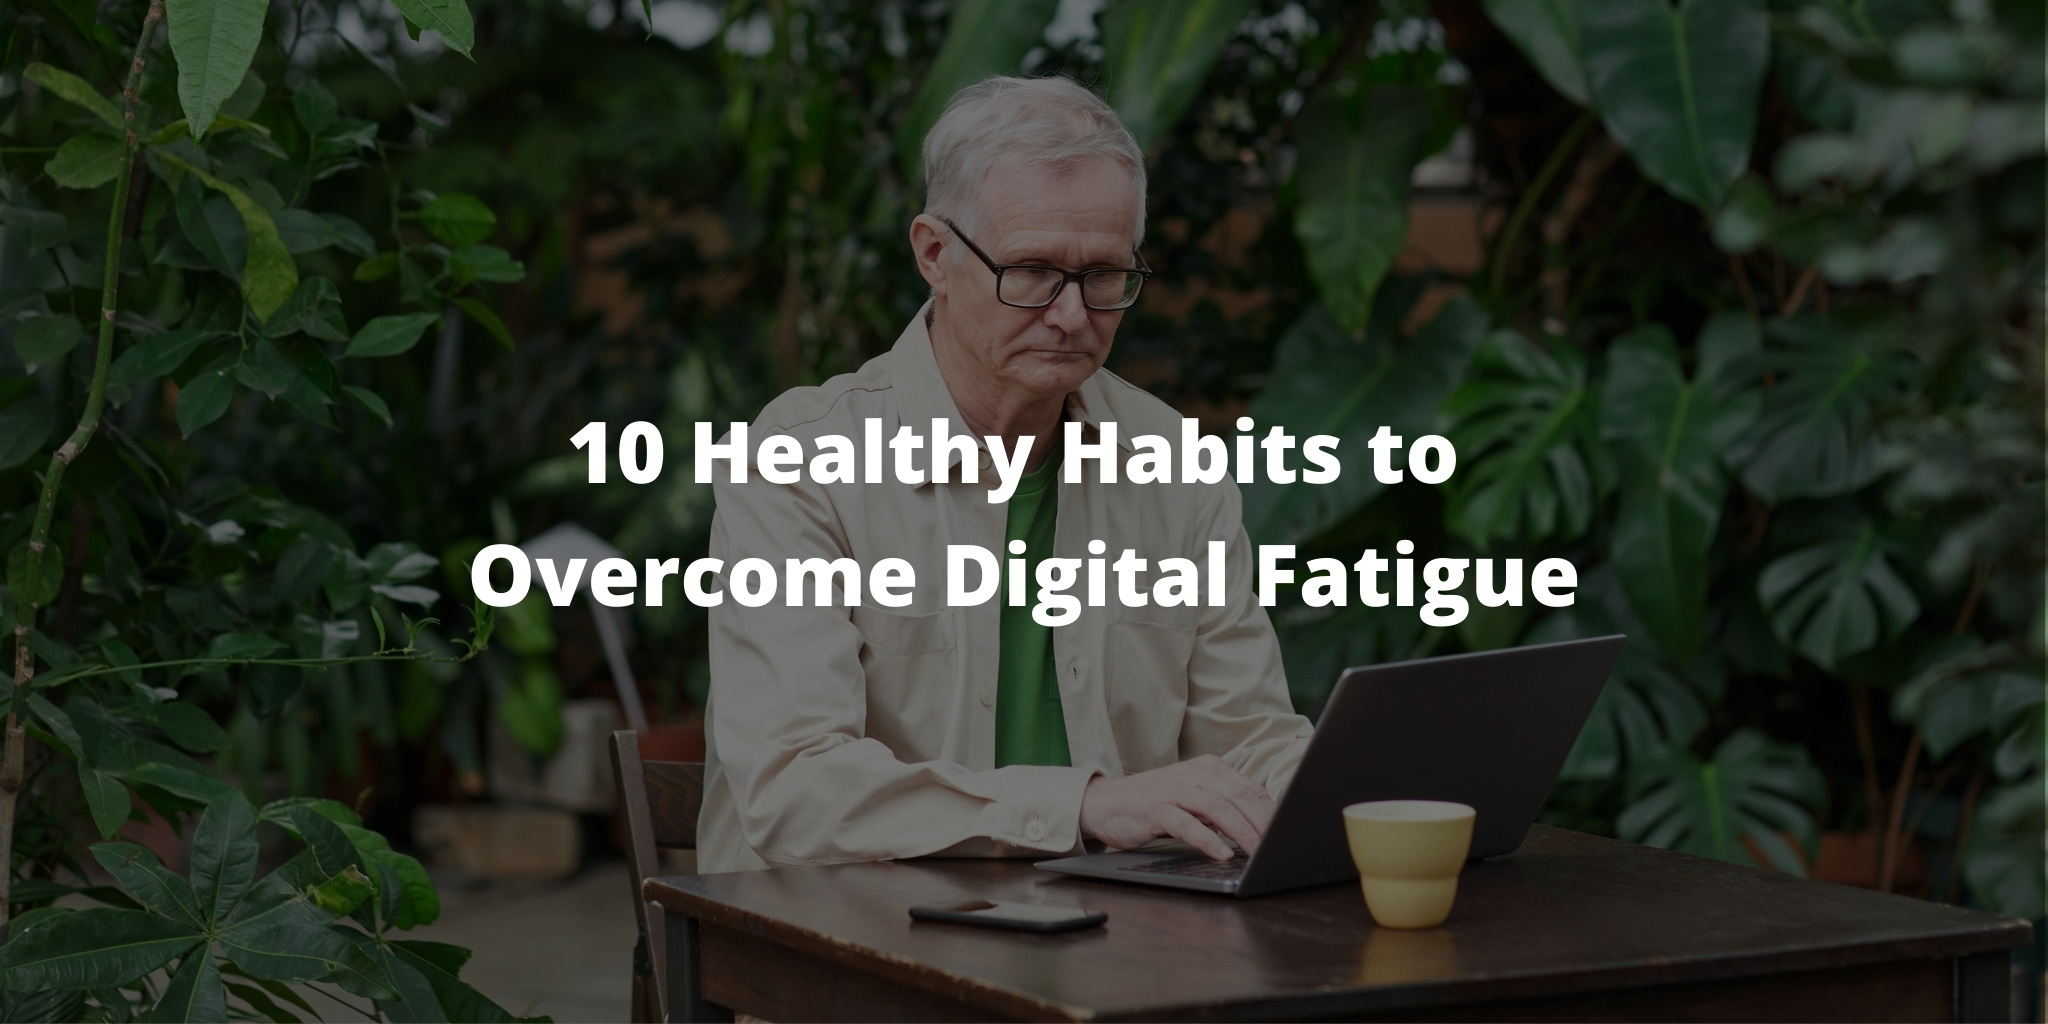 10 Healthy Habits to Overcome Digital Fatigue